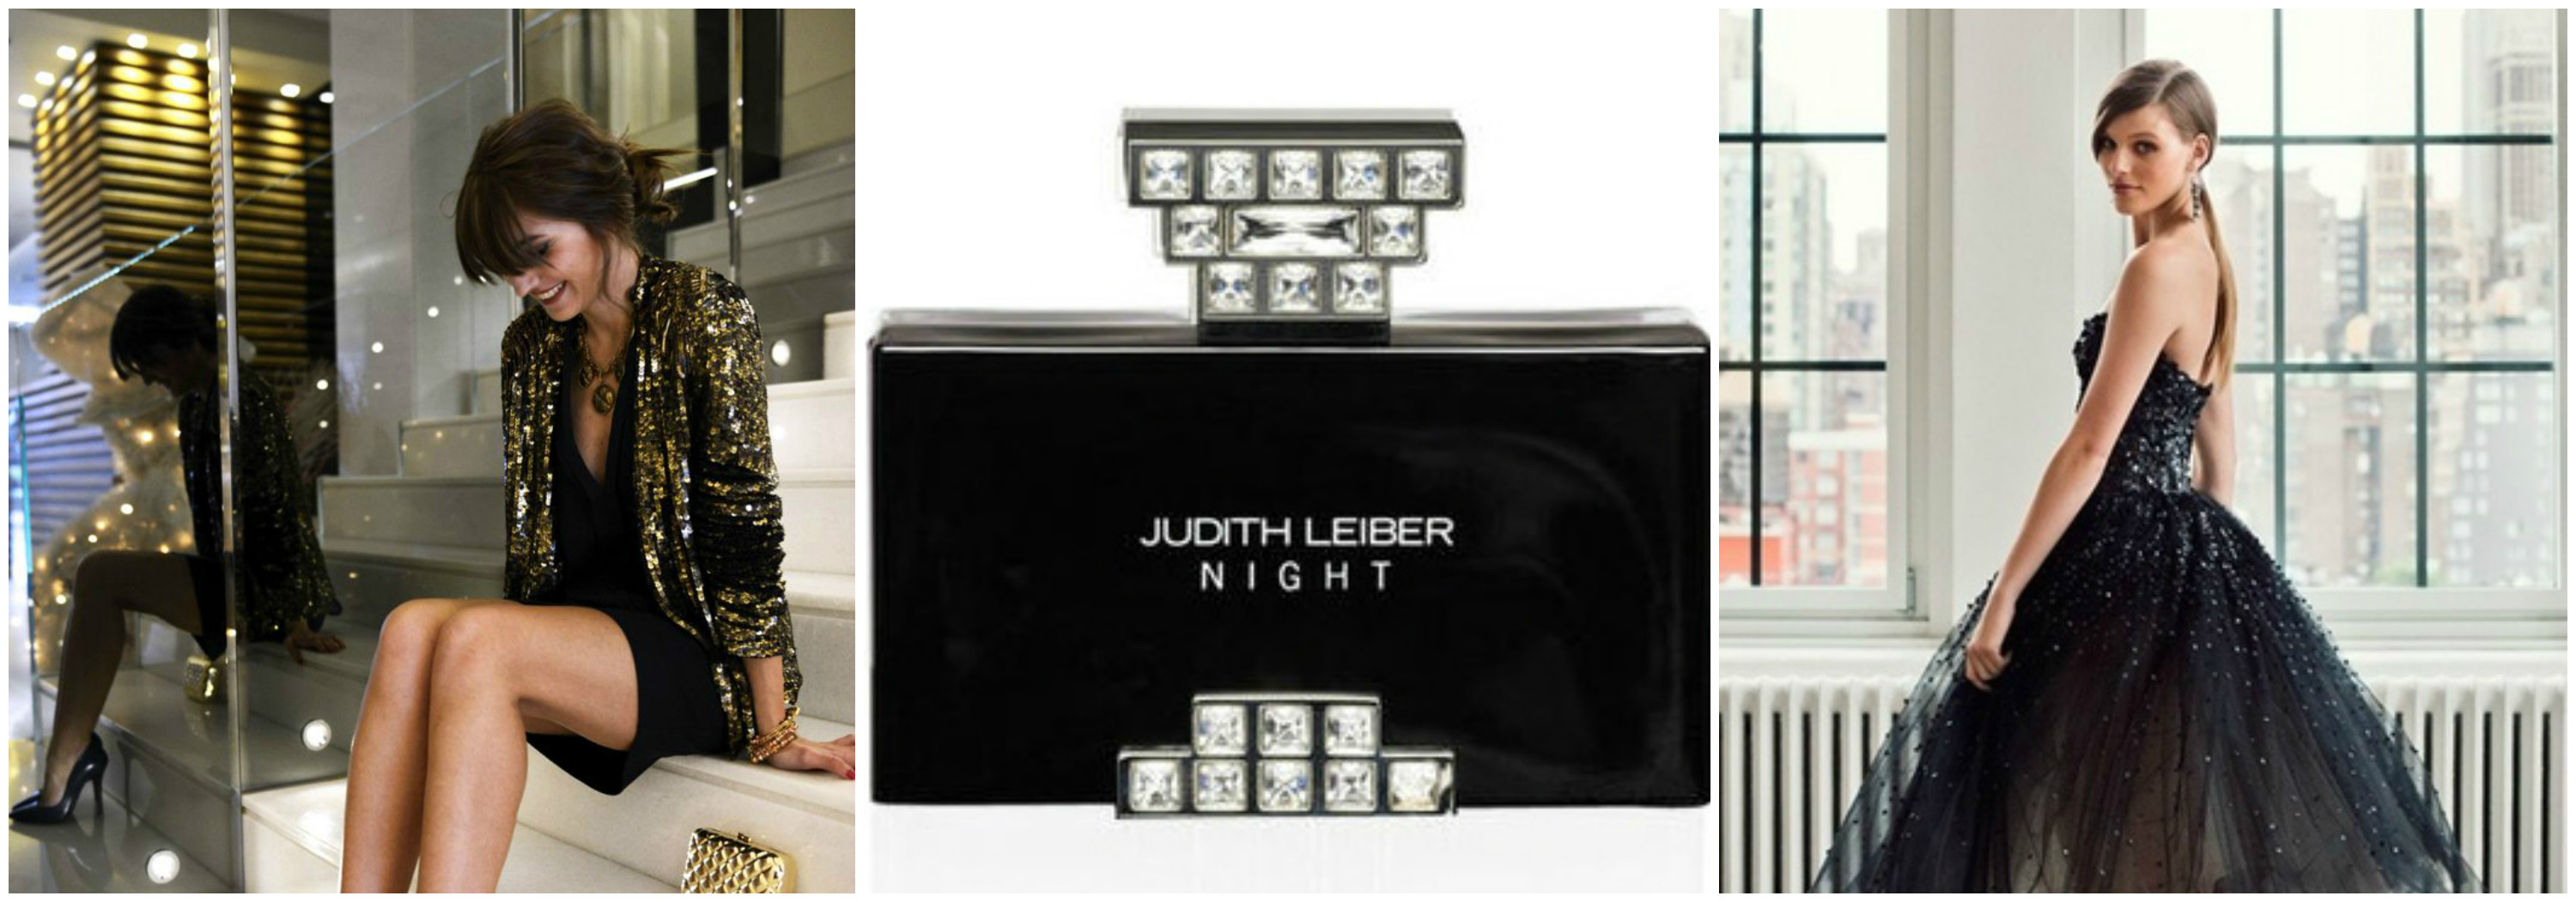 Perfume of the Day: Night by Judith Leiber